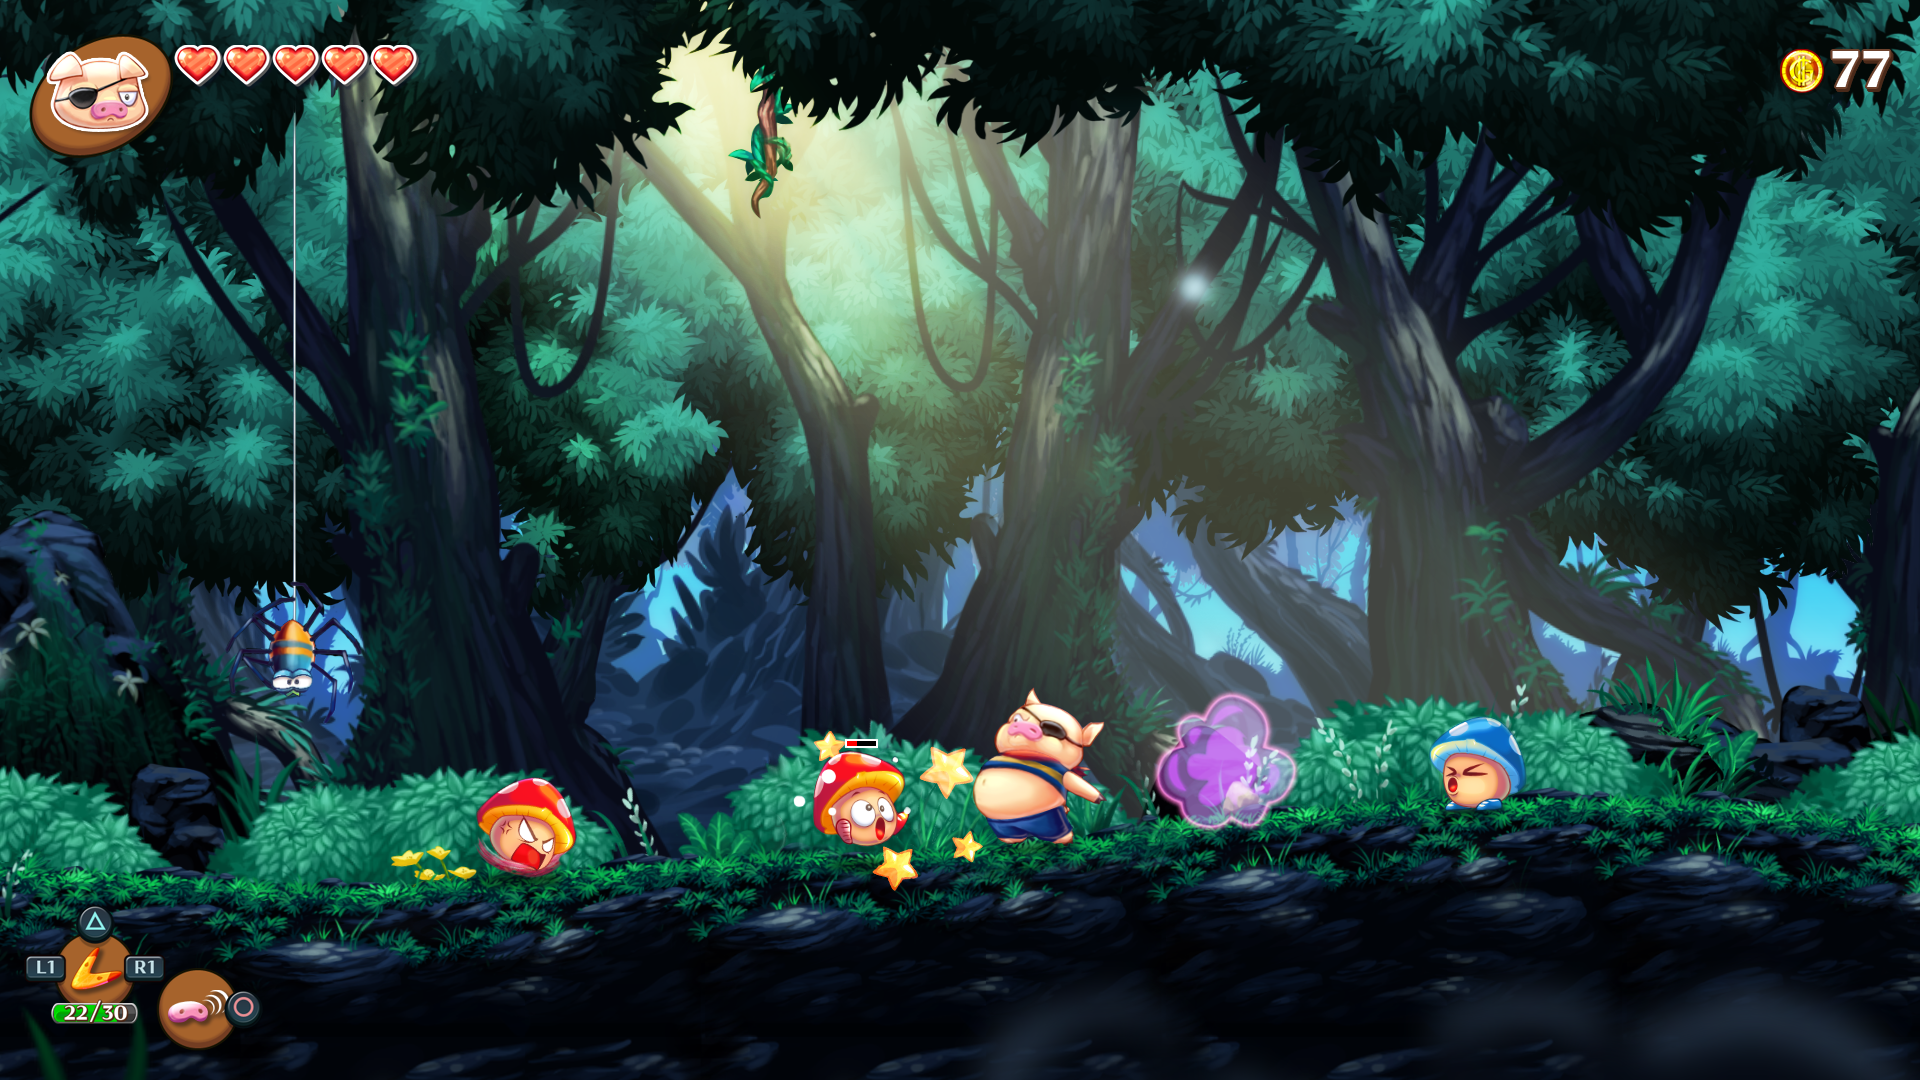 http://monsterboy.com/blog/uploads/Screenshots/Screenshot-06-Forest.png